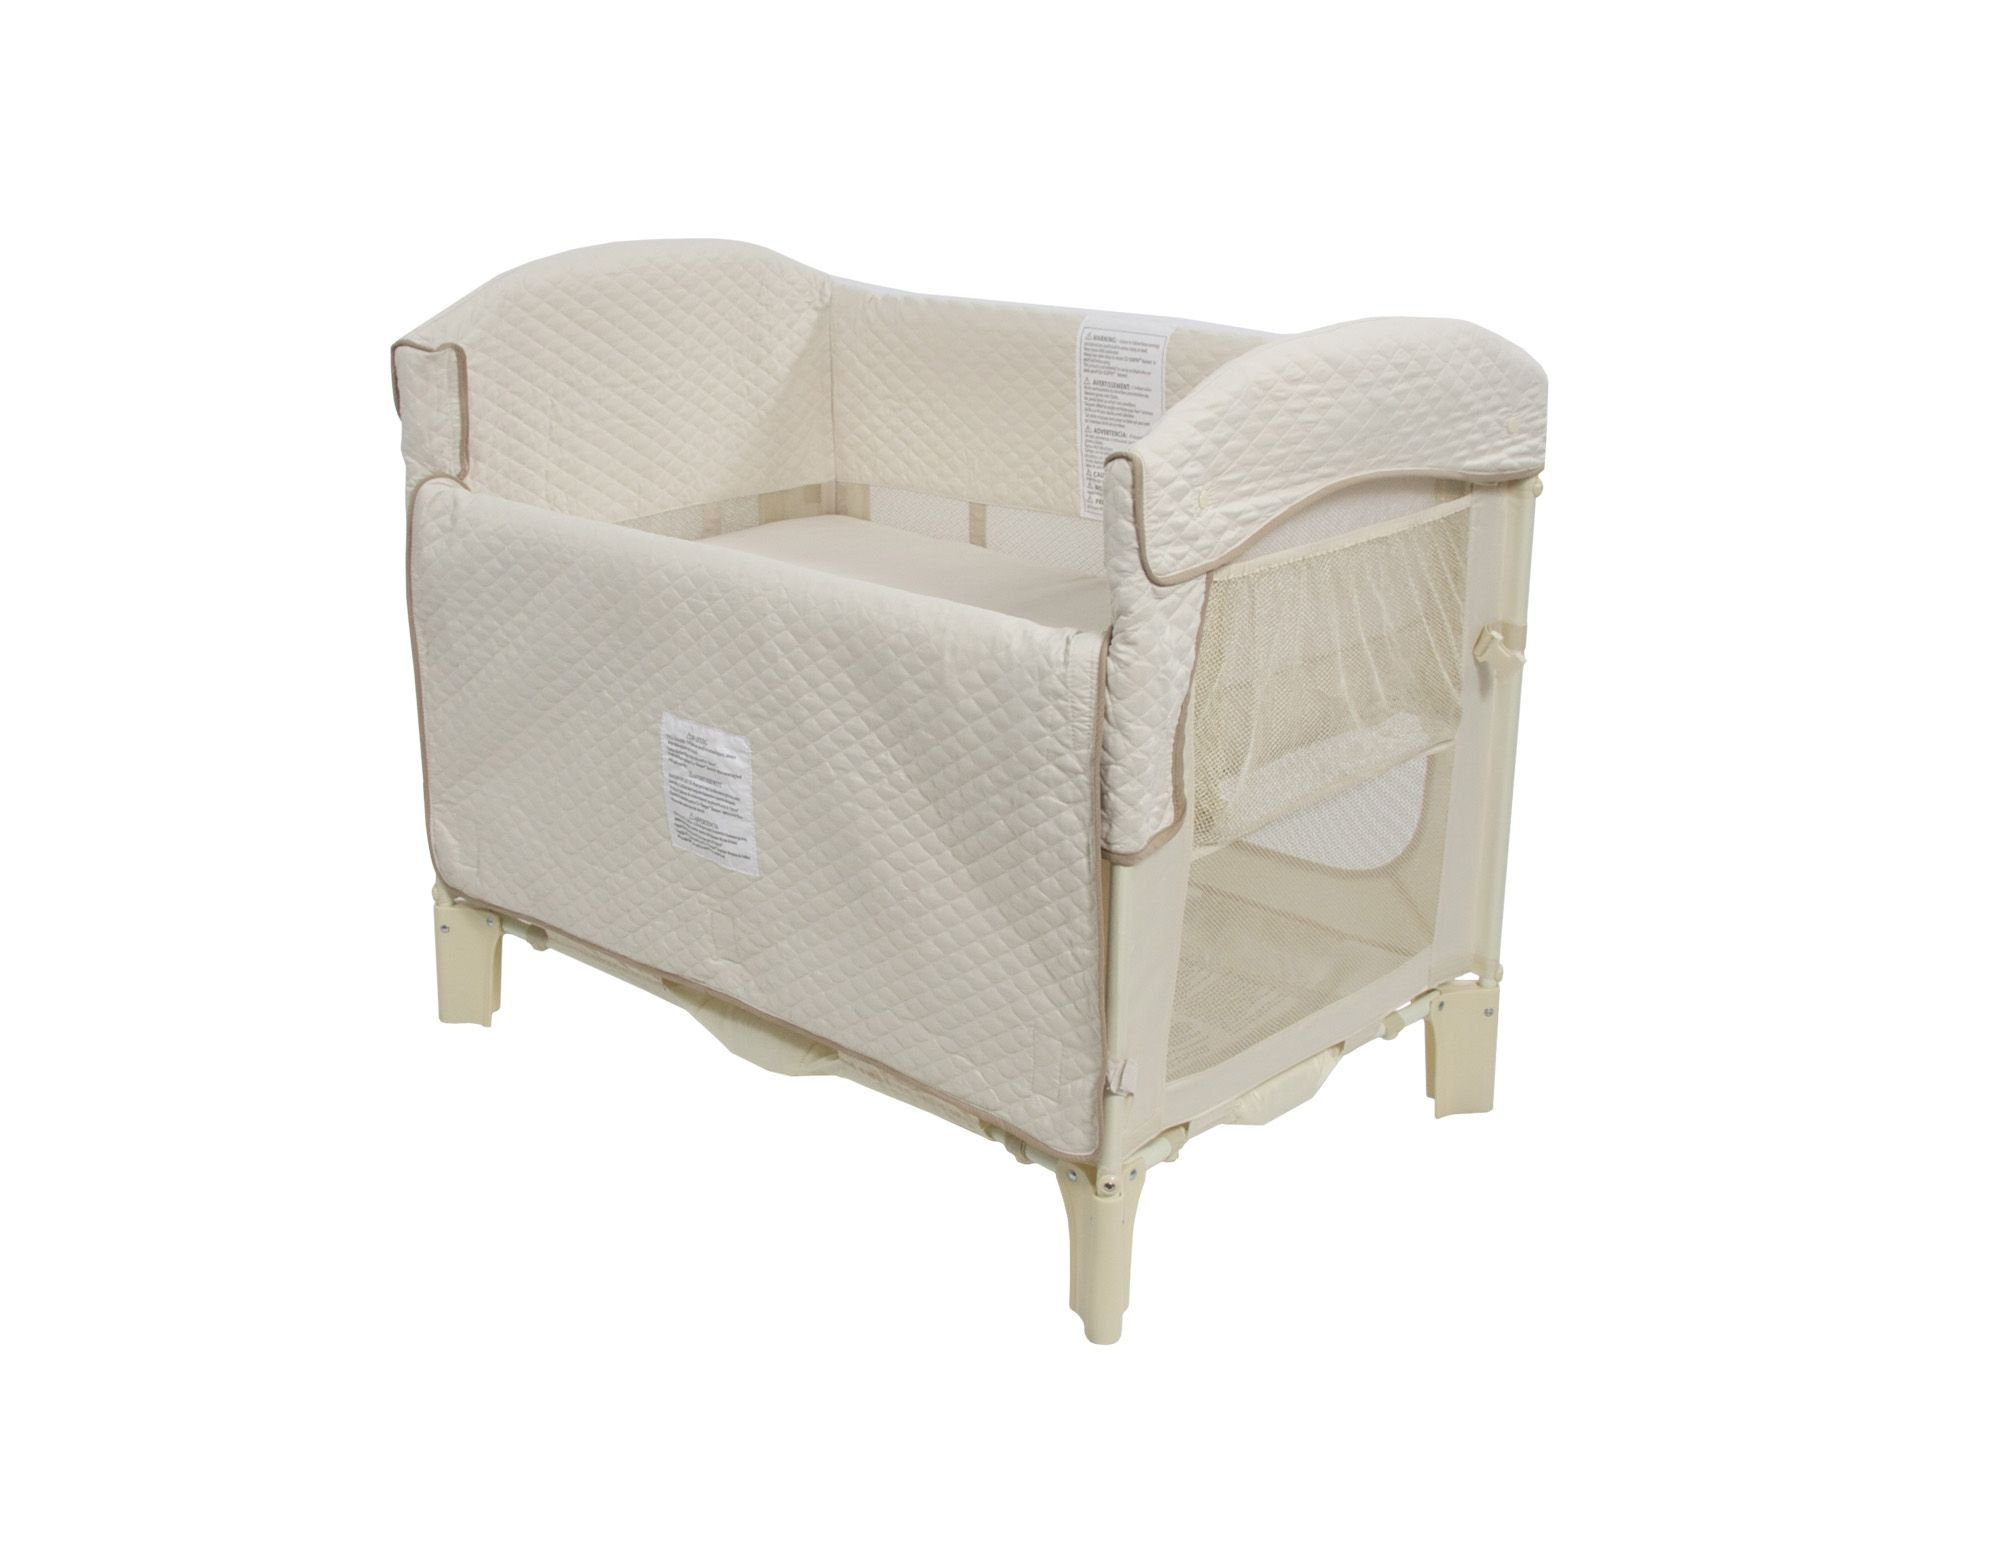 delight home misty baby snuggle dandelions en mist sleeper comfort nest infant